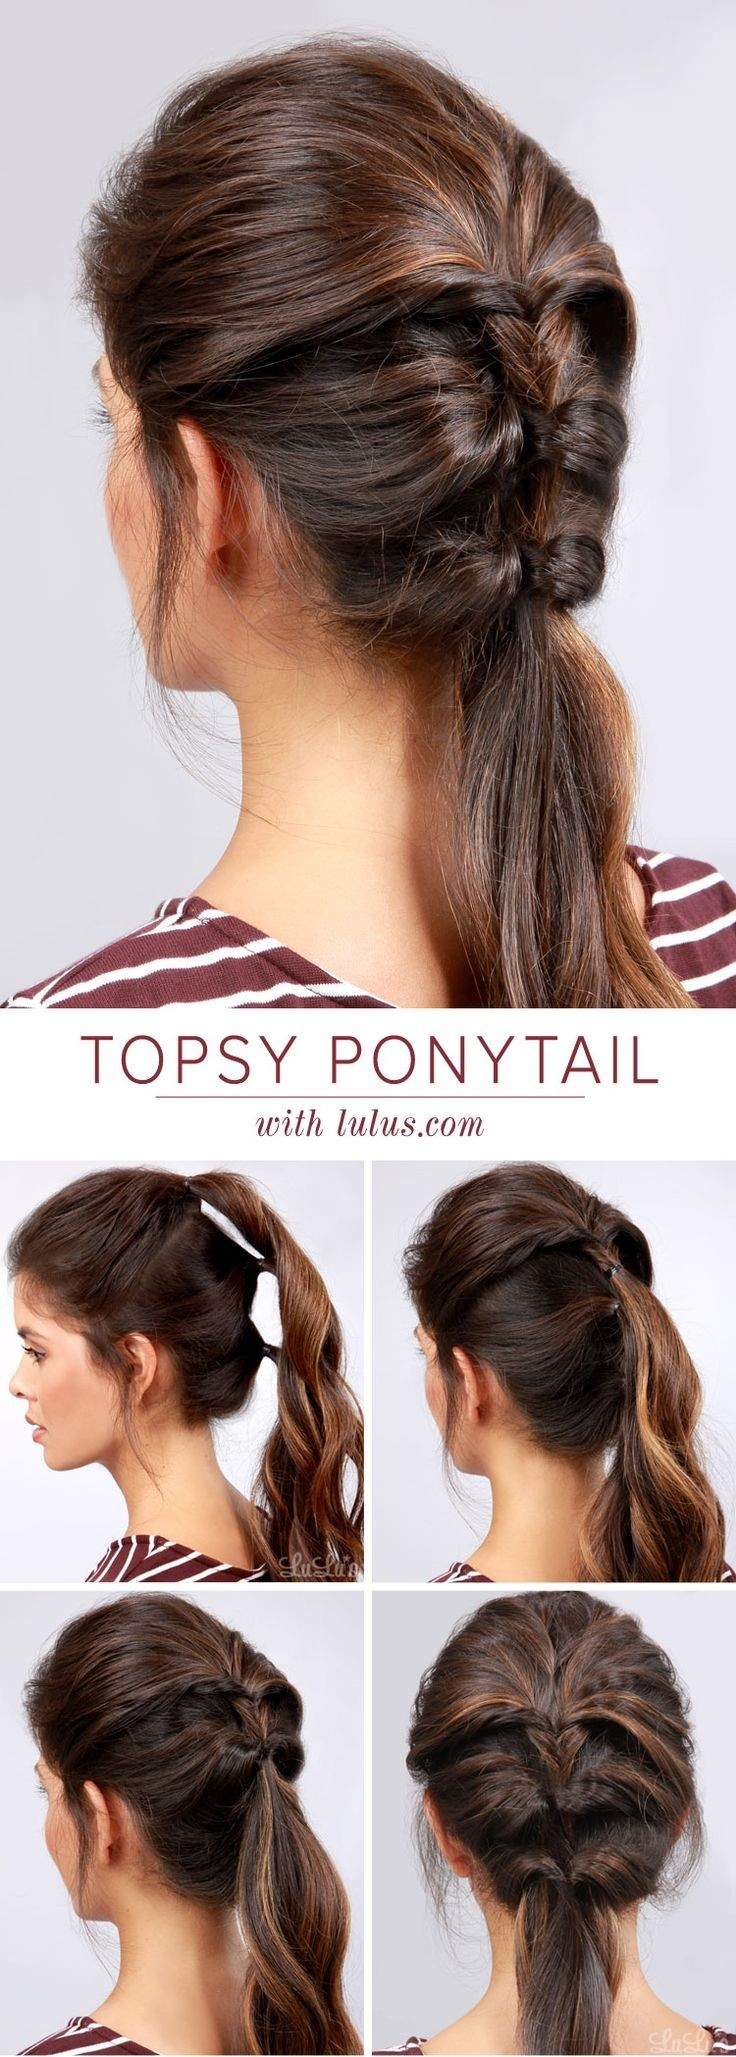 22 great ponytail hairstyles for girls pretty designs. Black Bedroom Furniture Sets. Home Design Ideas